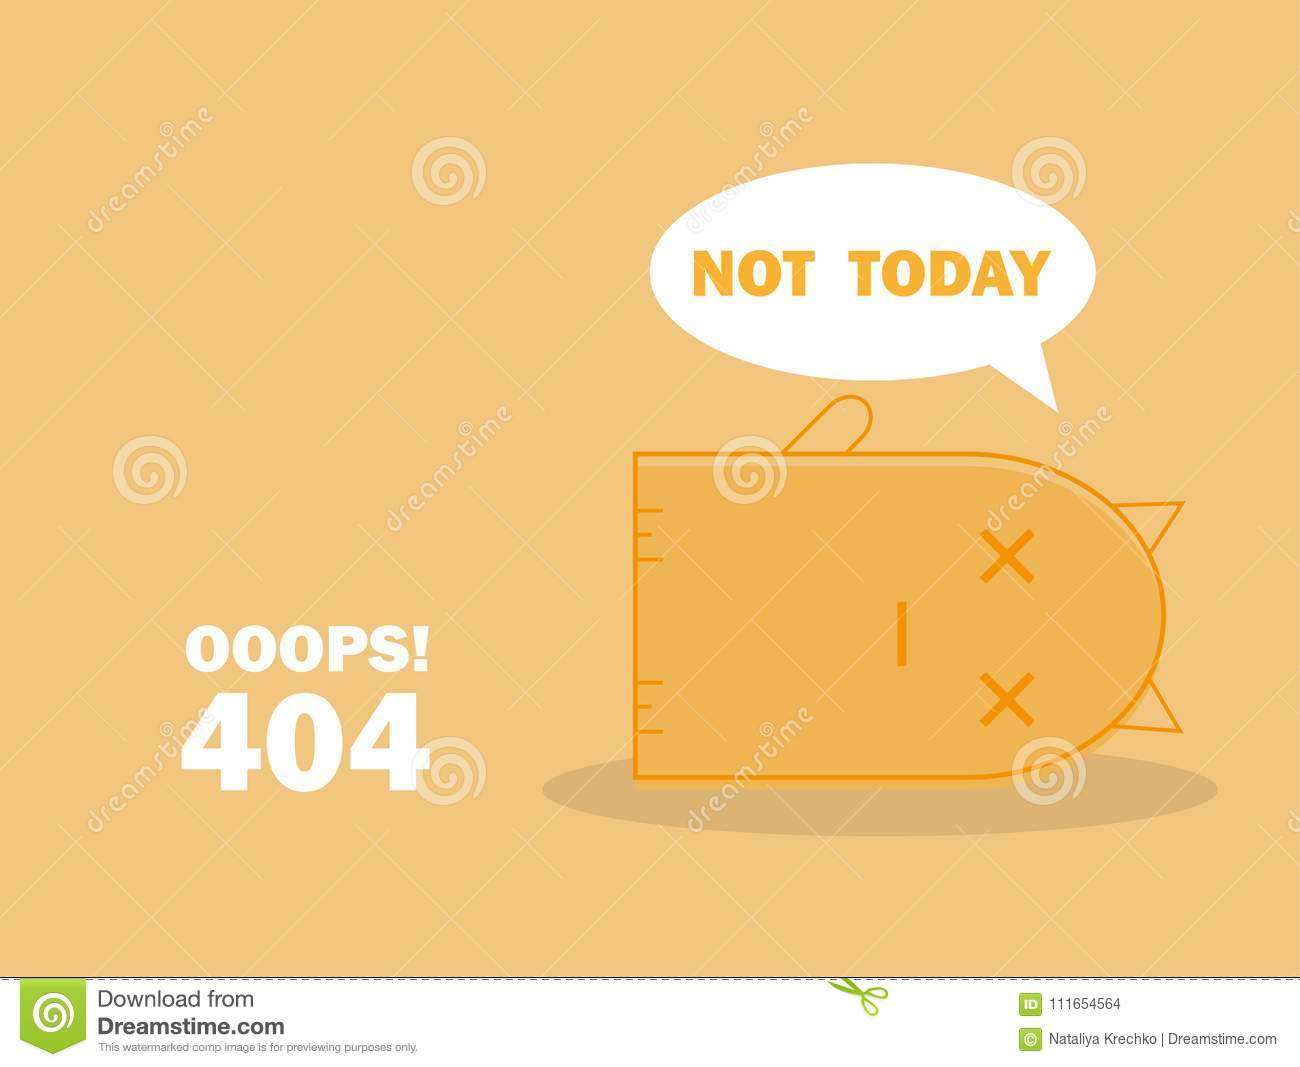 404 Error Page With Cute Cat And Warning Message Oops Page